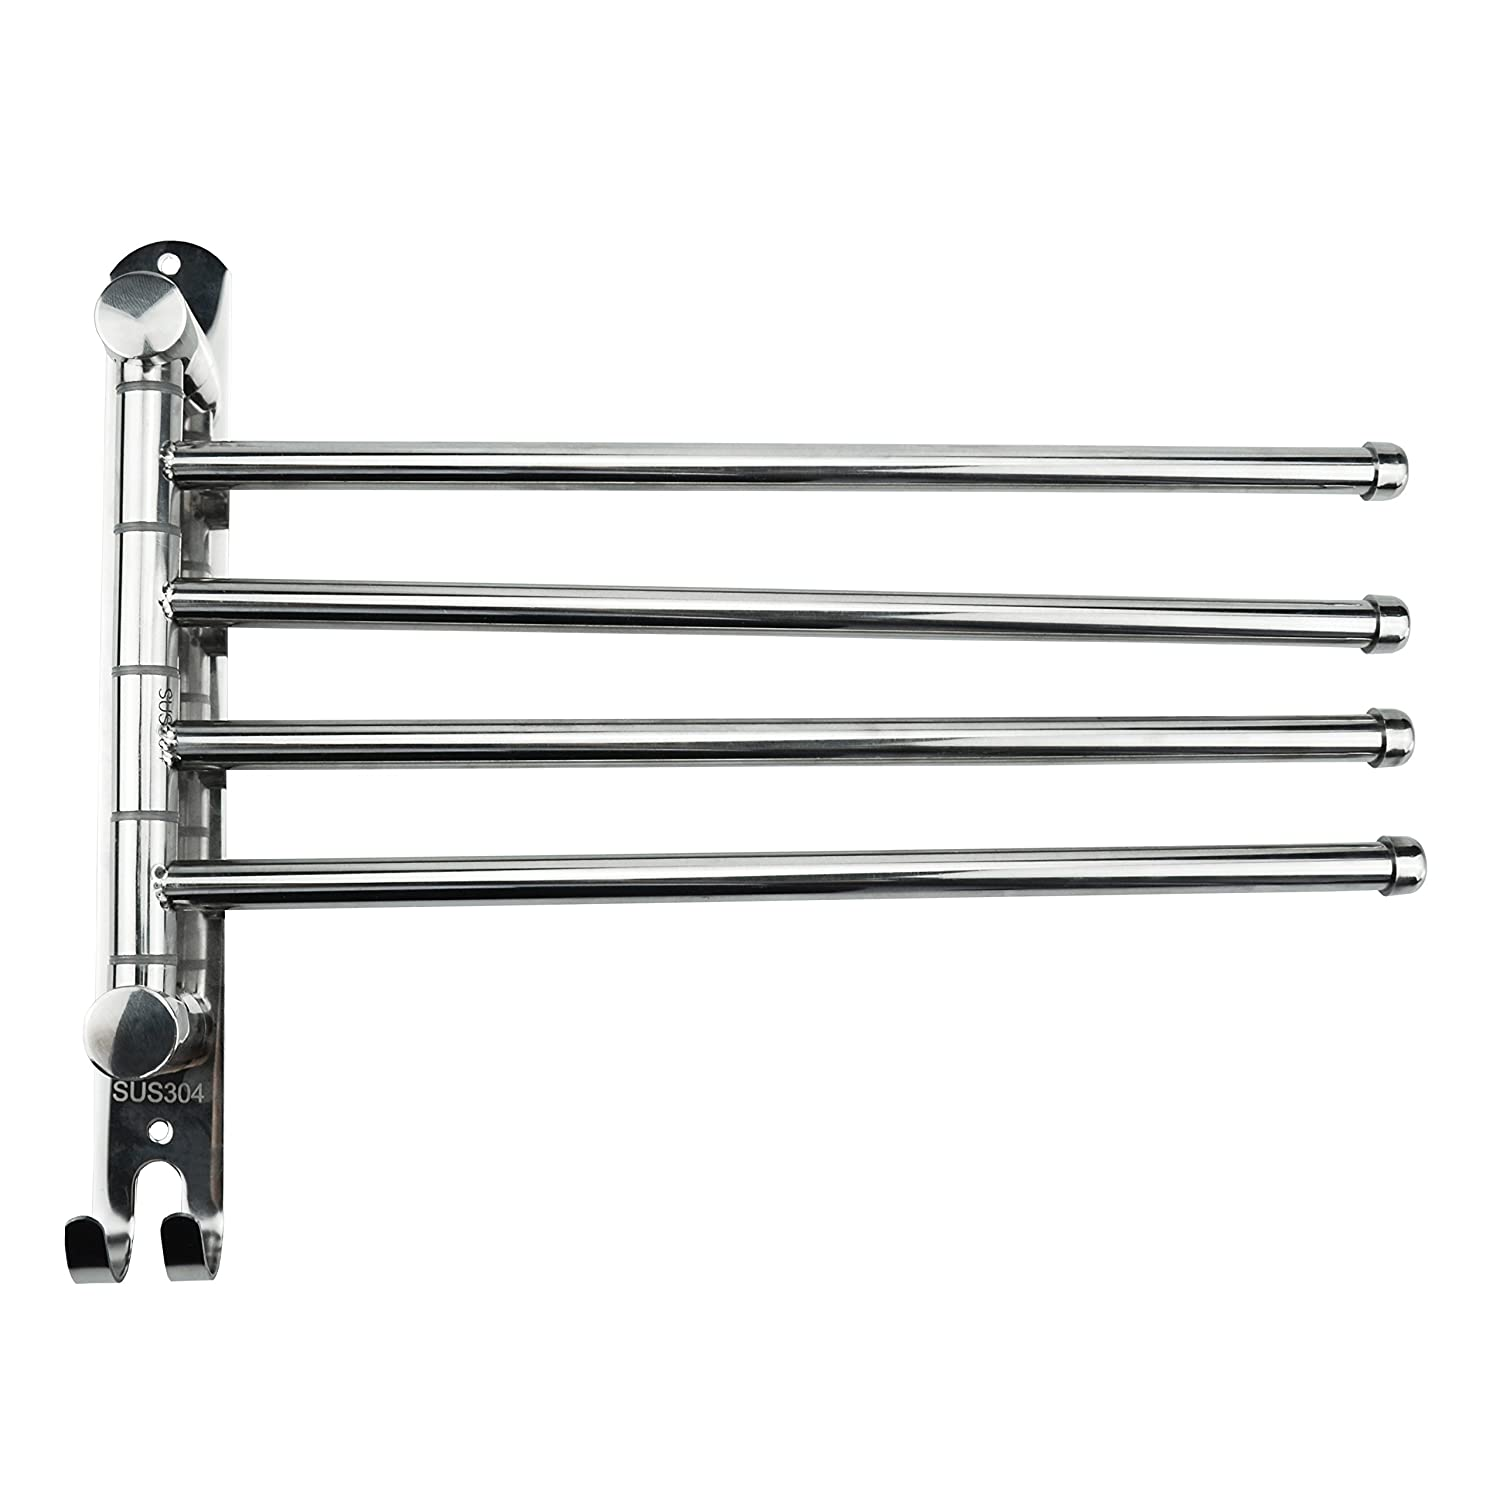 Little World Towel Rack Wall Mounted Swing Towel Bar - Silver Stainless Steel Bath Towel Rod Arm, Bathroom/Kitchen Swivel Hanger Holder Organizer Folding Space Saver Towel Rail - 4 Bars LWMJJF01